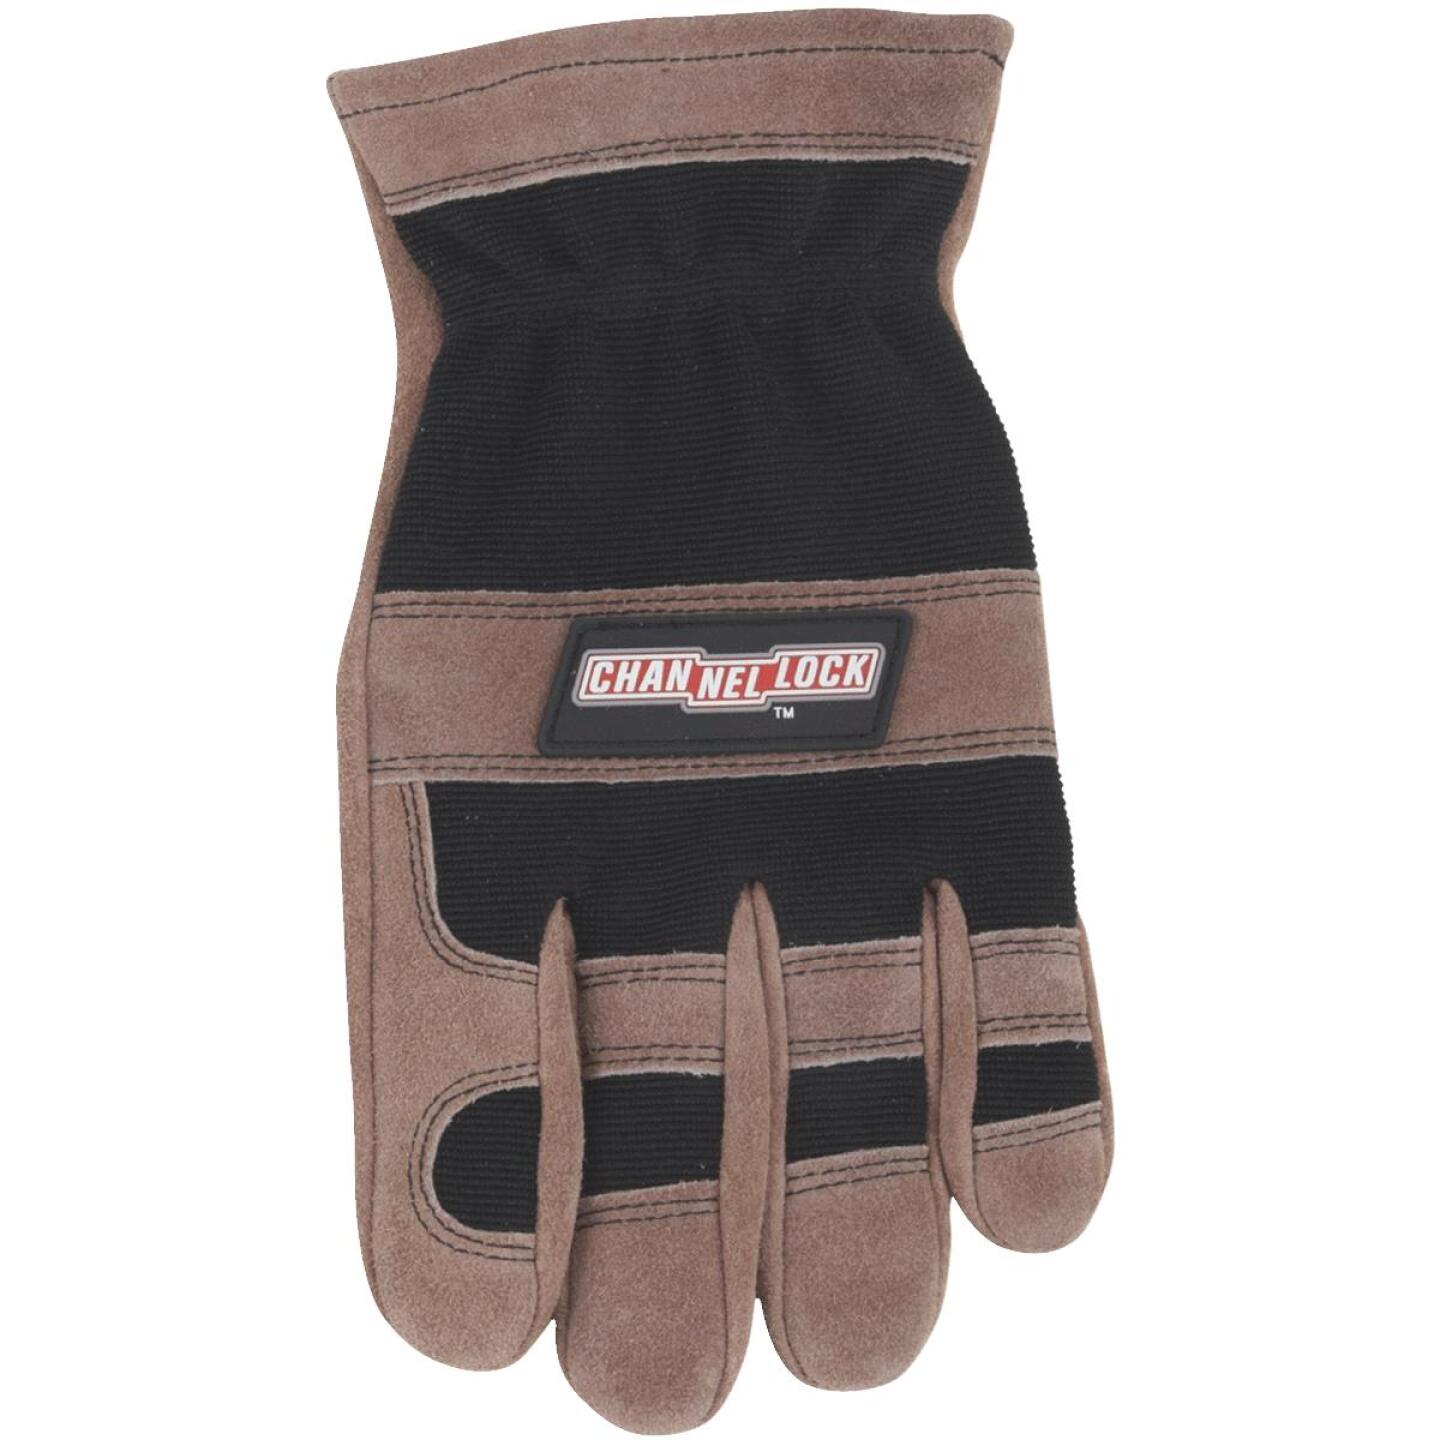 Channellock Men's Large Leather Work Glove Image 4